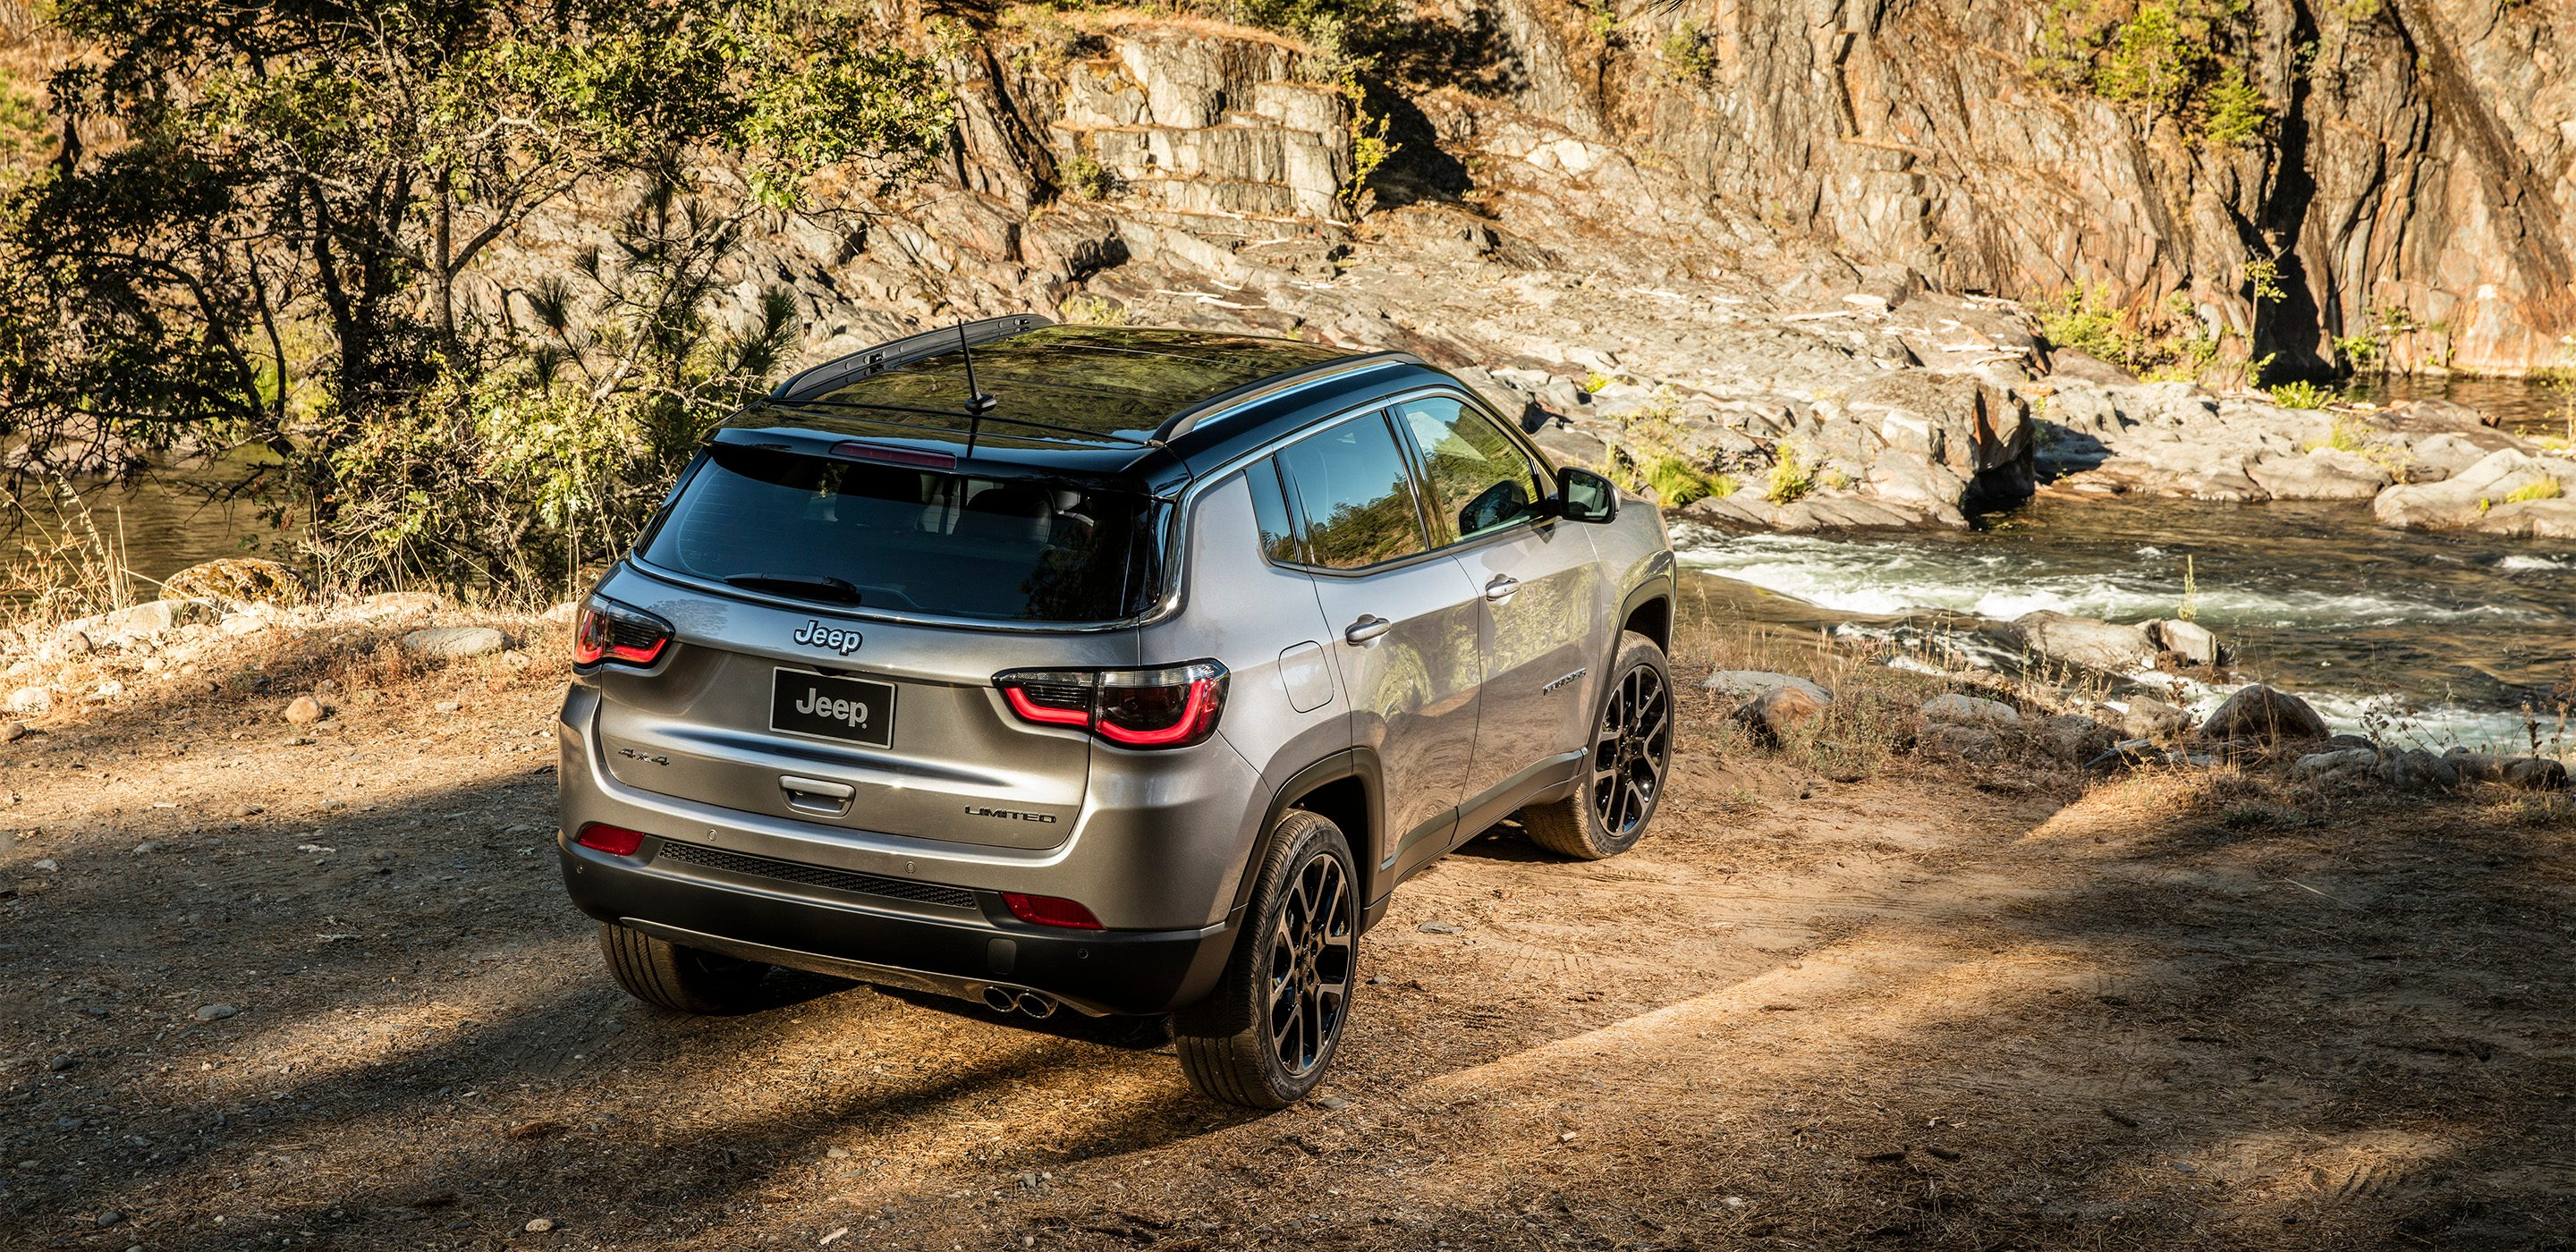 2017 All-New Jeep Compass Rear Exterior